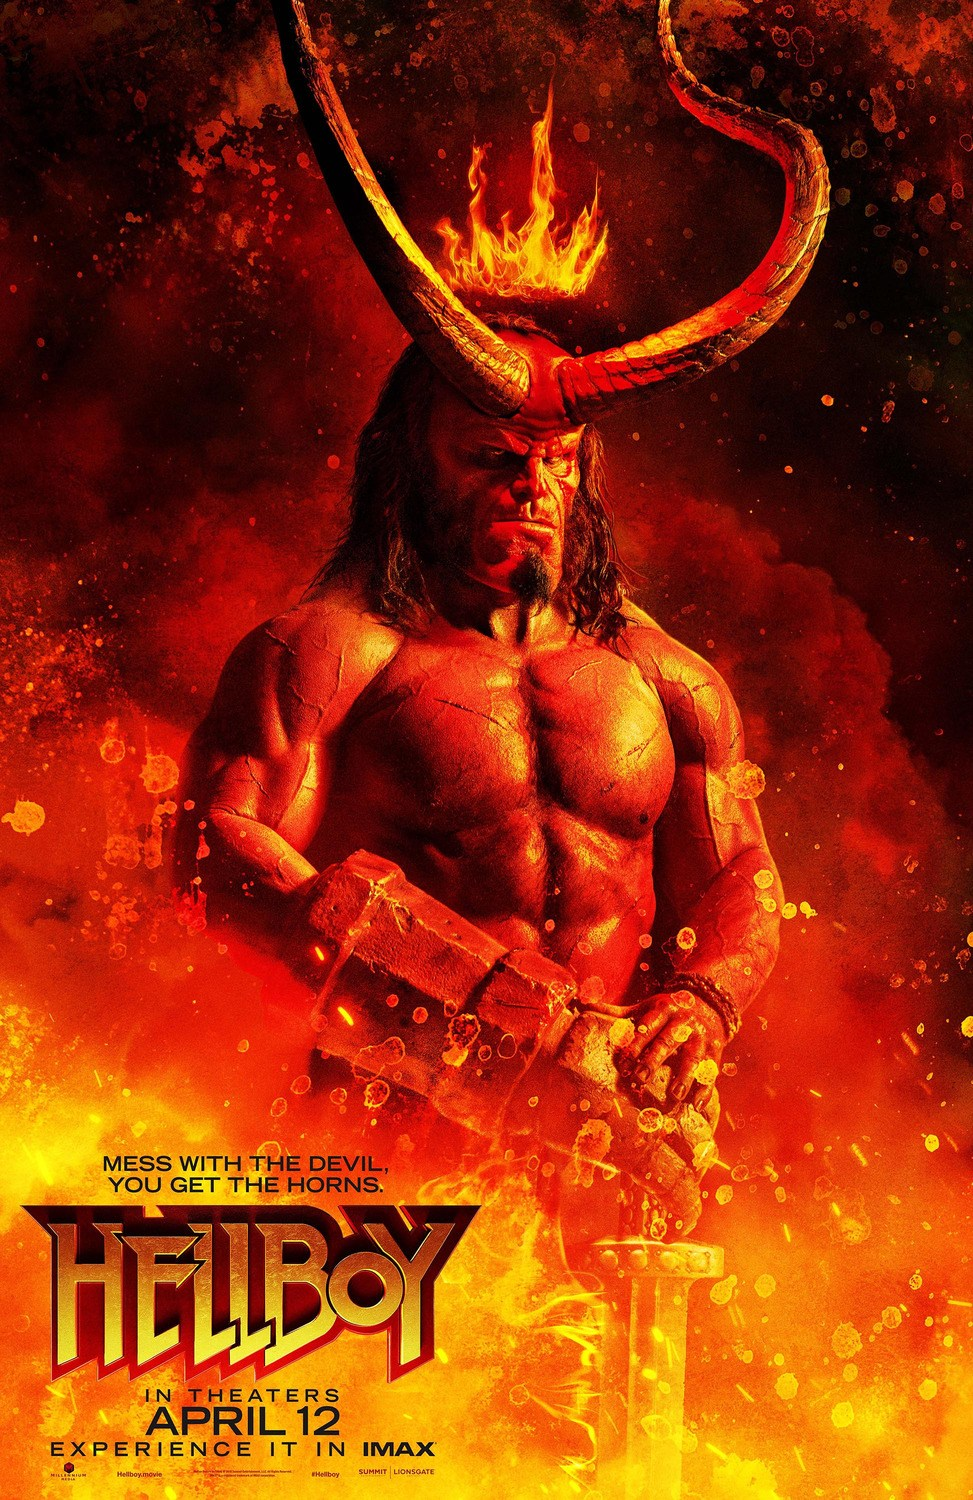 HELLBOY 2019 Poster 1 - 2 Awesome New Posters for HELLBOY Give You the Horns!